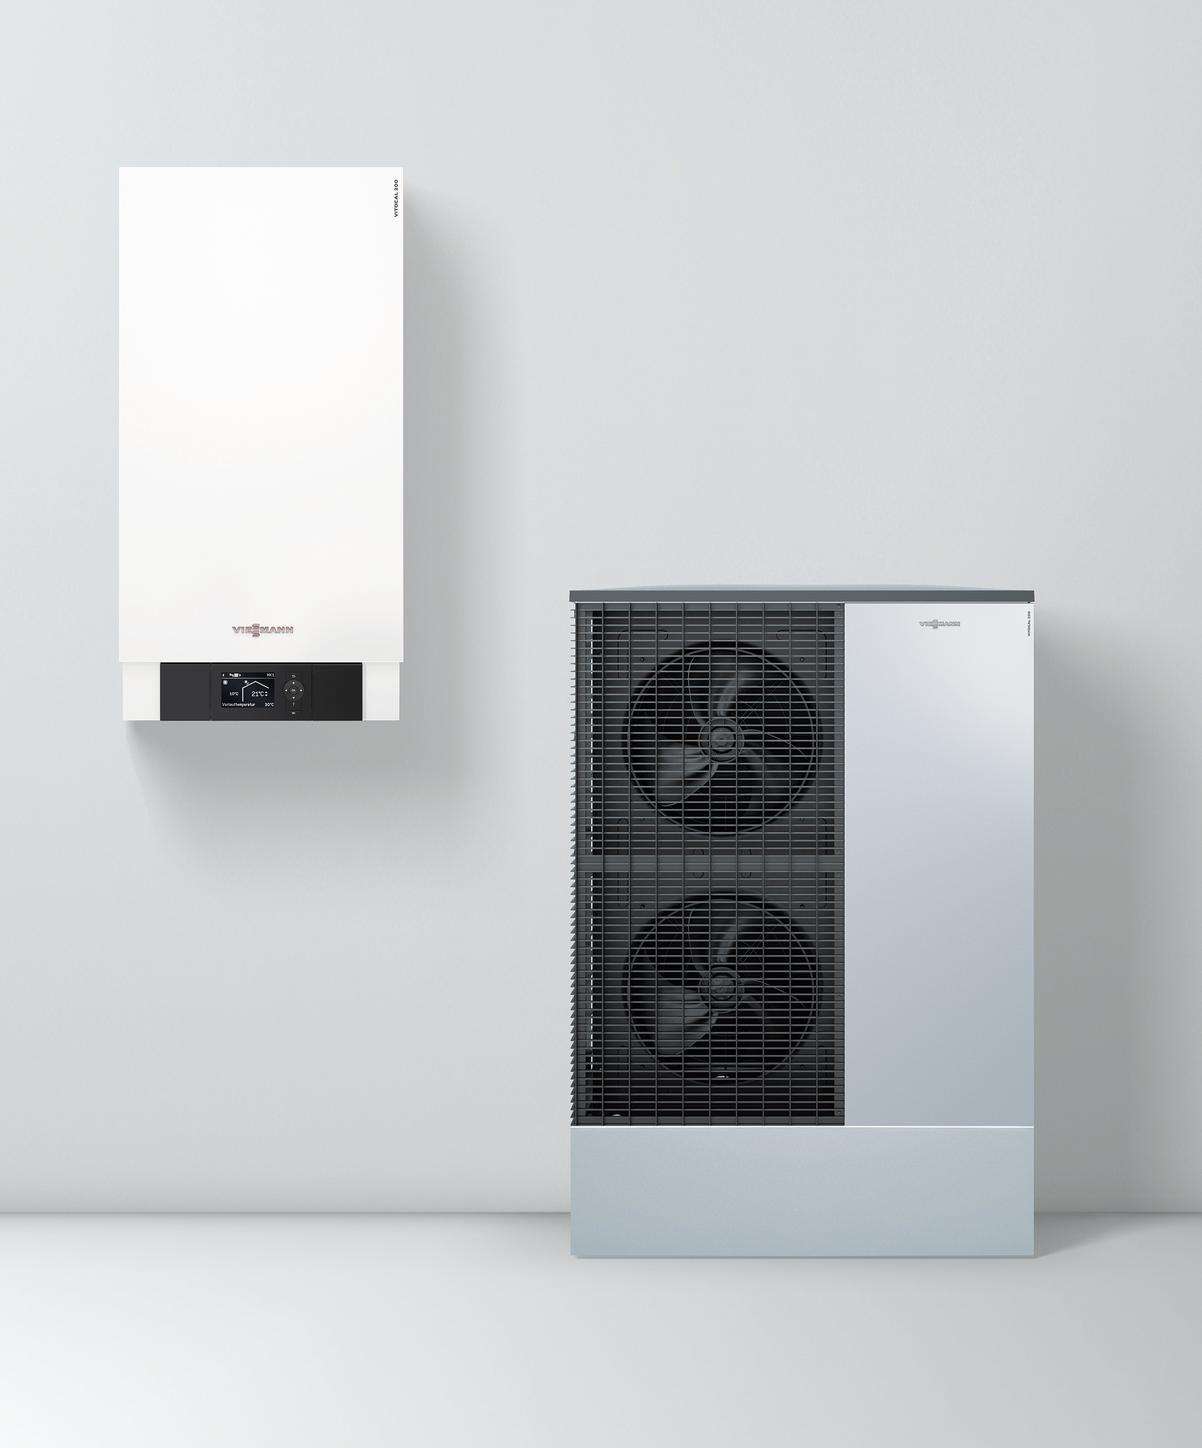 Viessmann air/water heat pump Vitocal 200-S